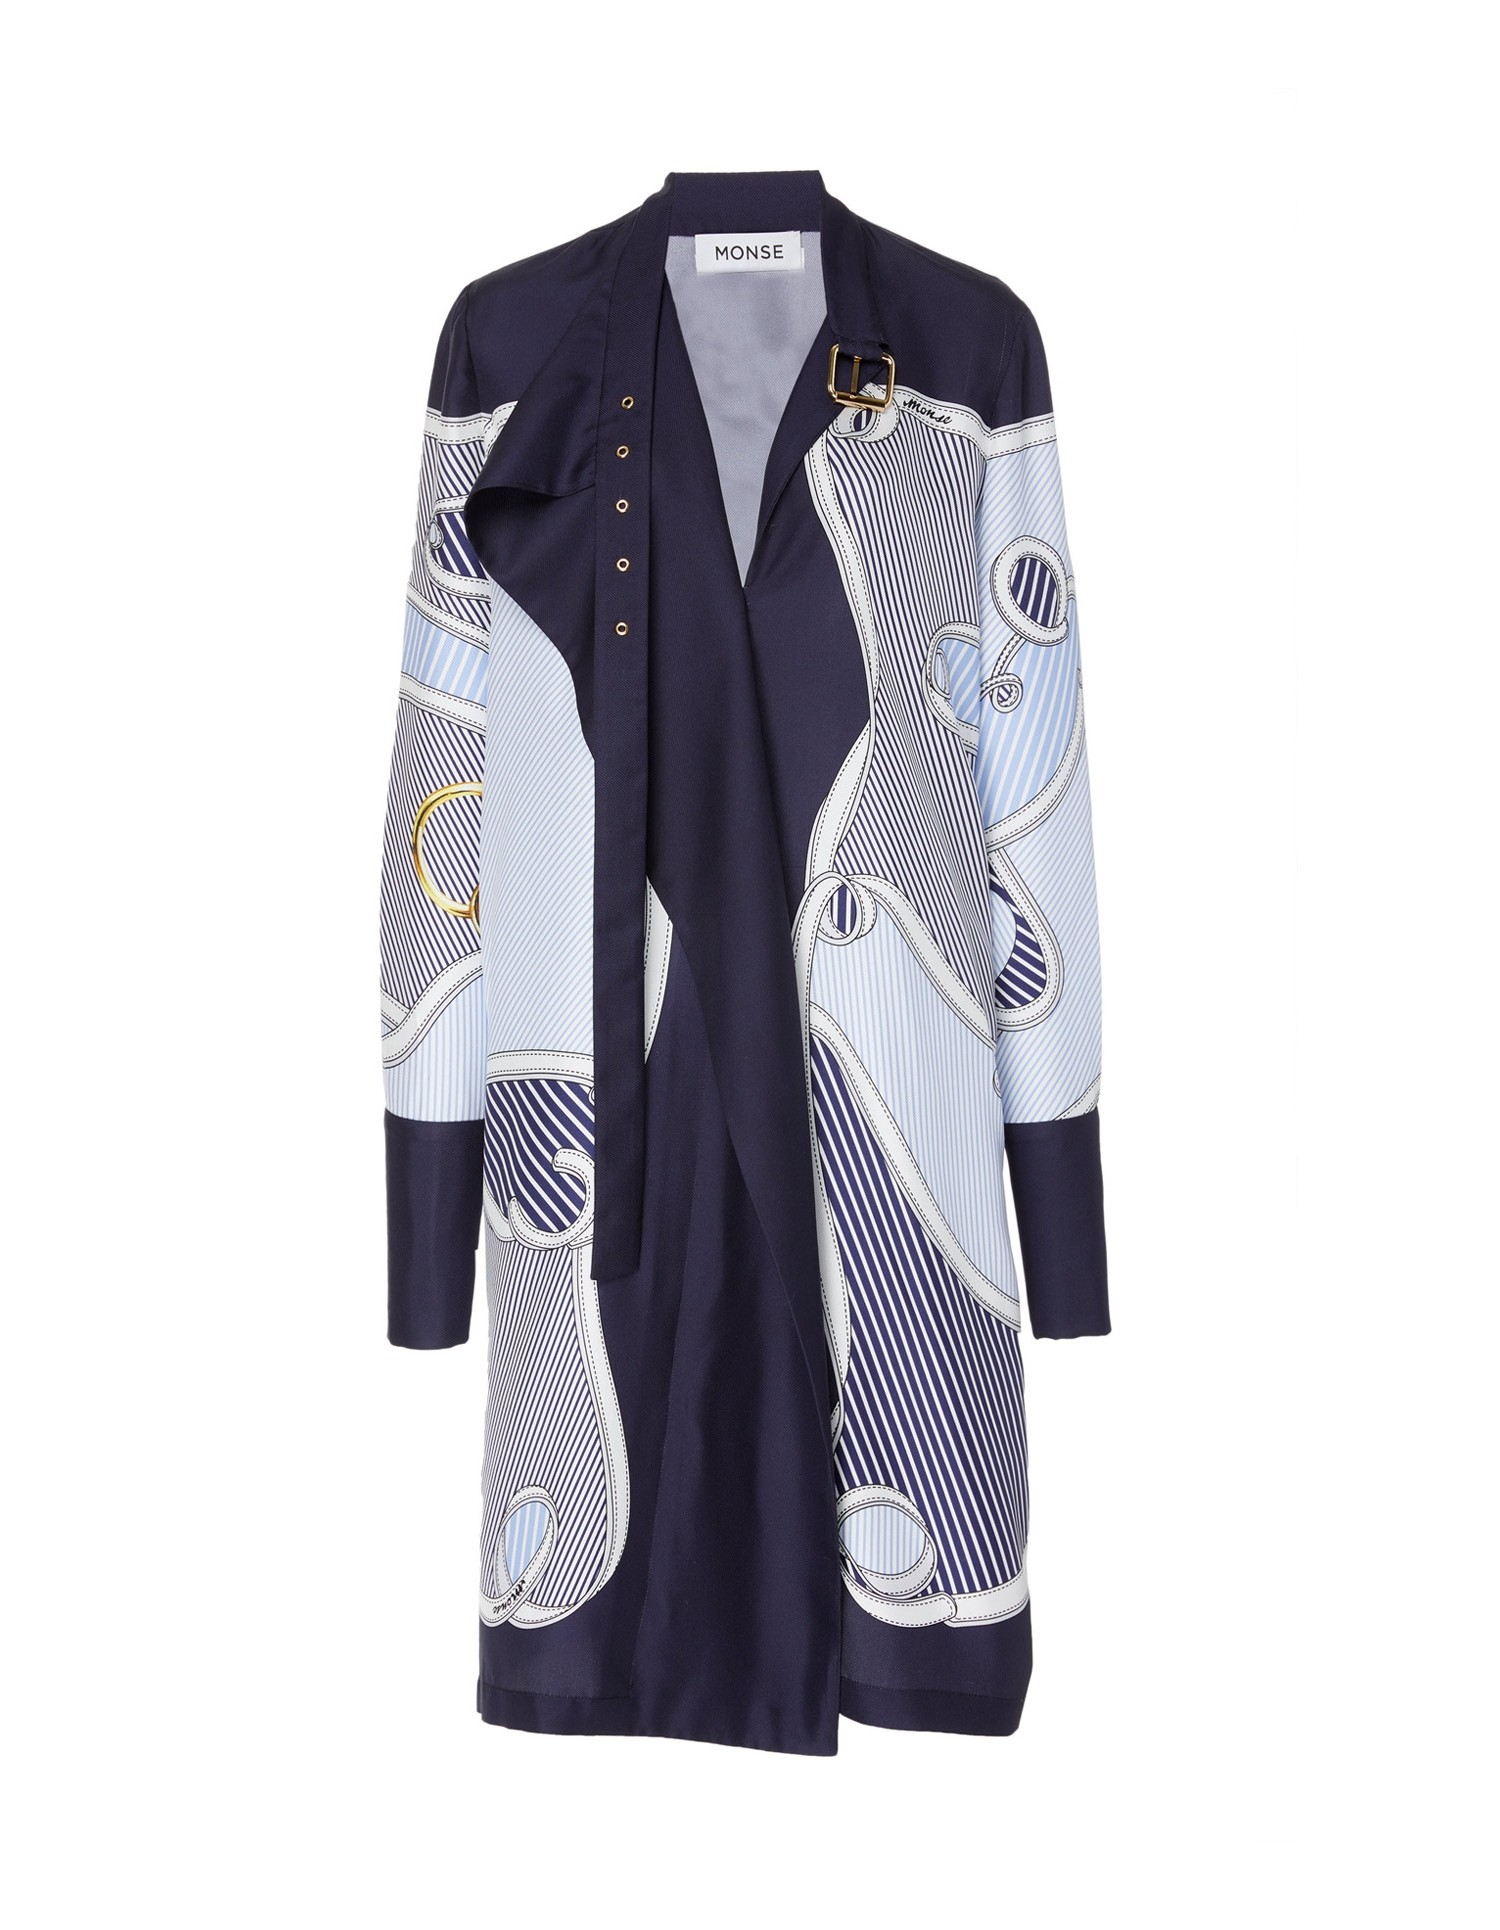 MONSE Belt Tie Pluto Print Shirtdress Flat